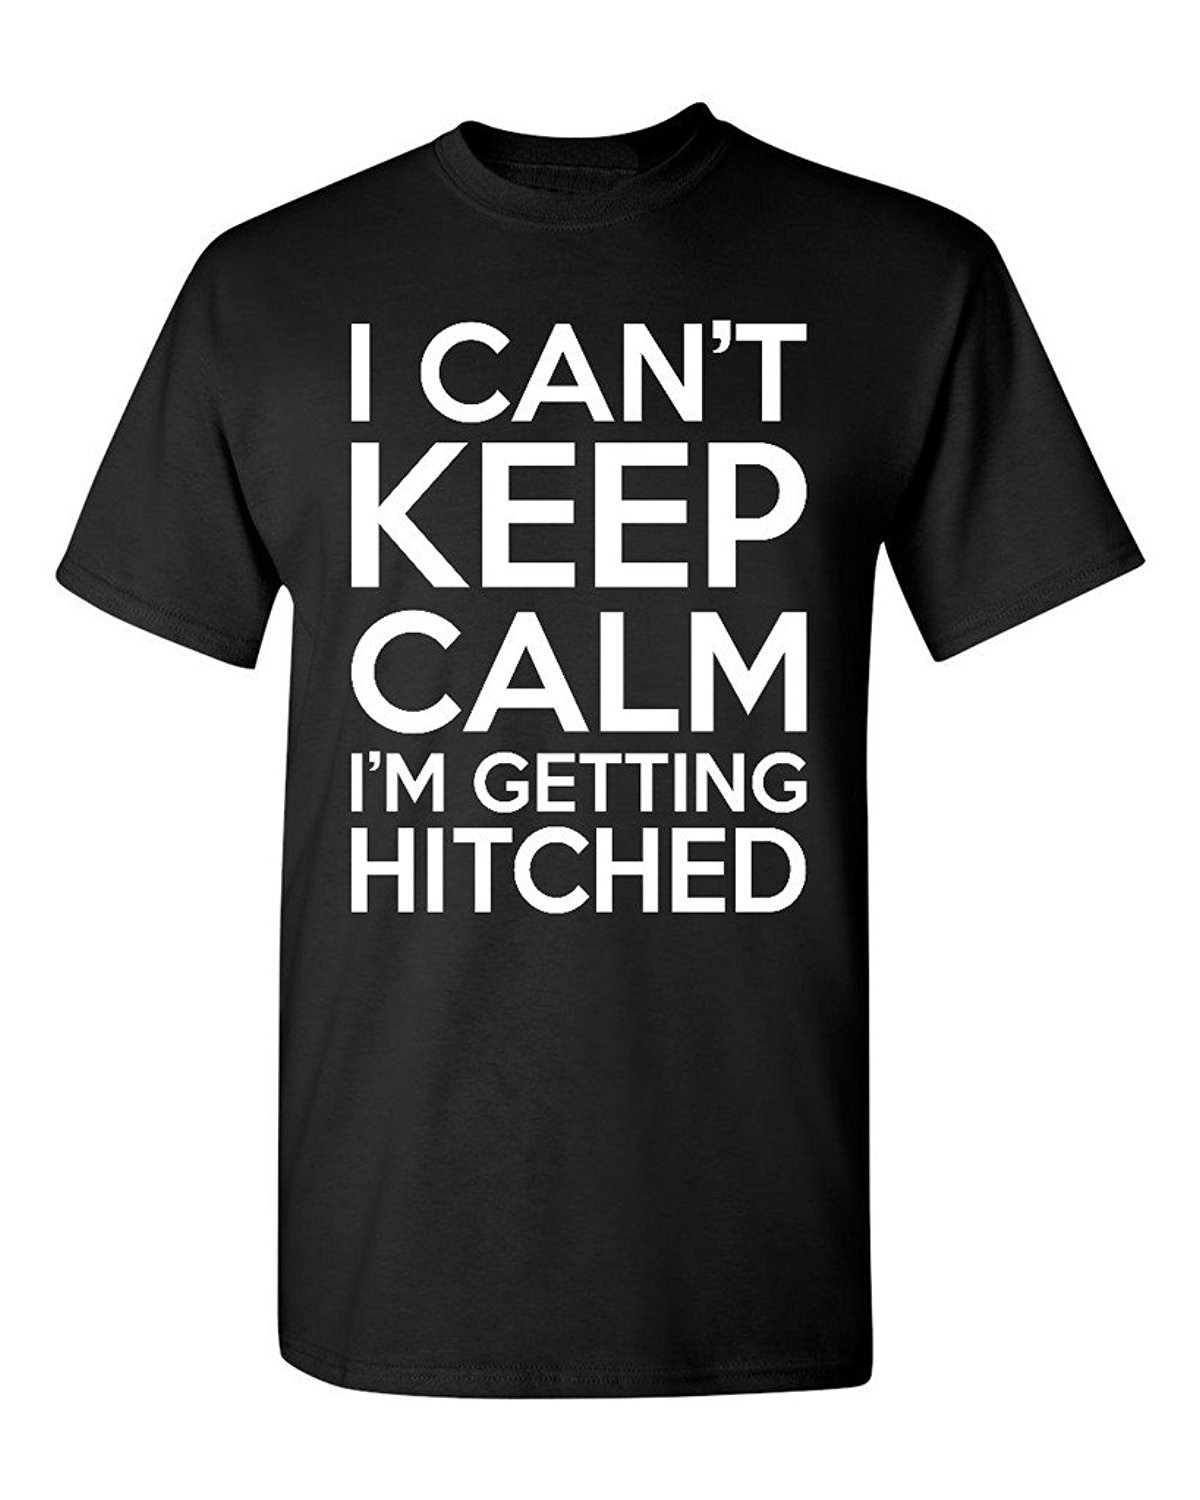 T Shirt Short Sleeve I CanT Keep Calm IM Getting Hitched T-Shirt Engagement Party Shirts Fashion High Quality Stylish Top Tee